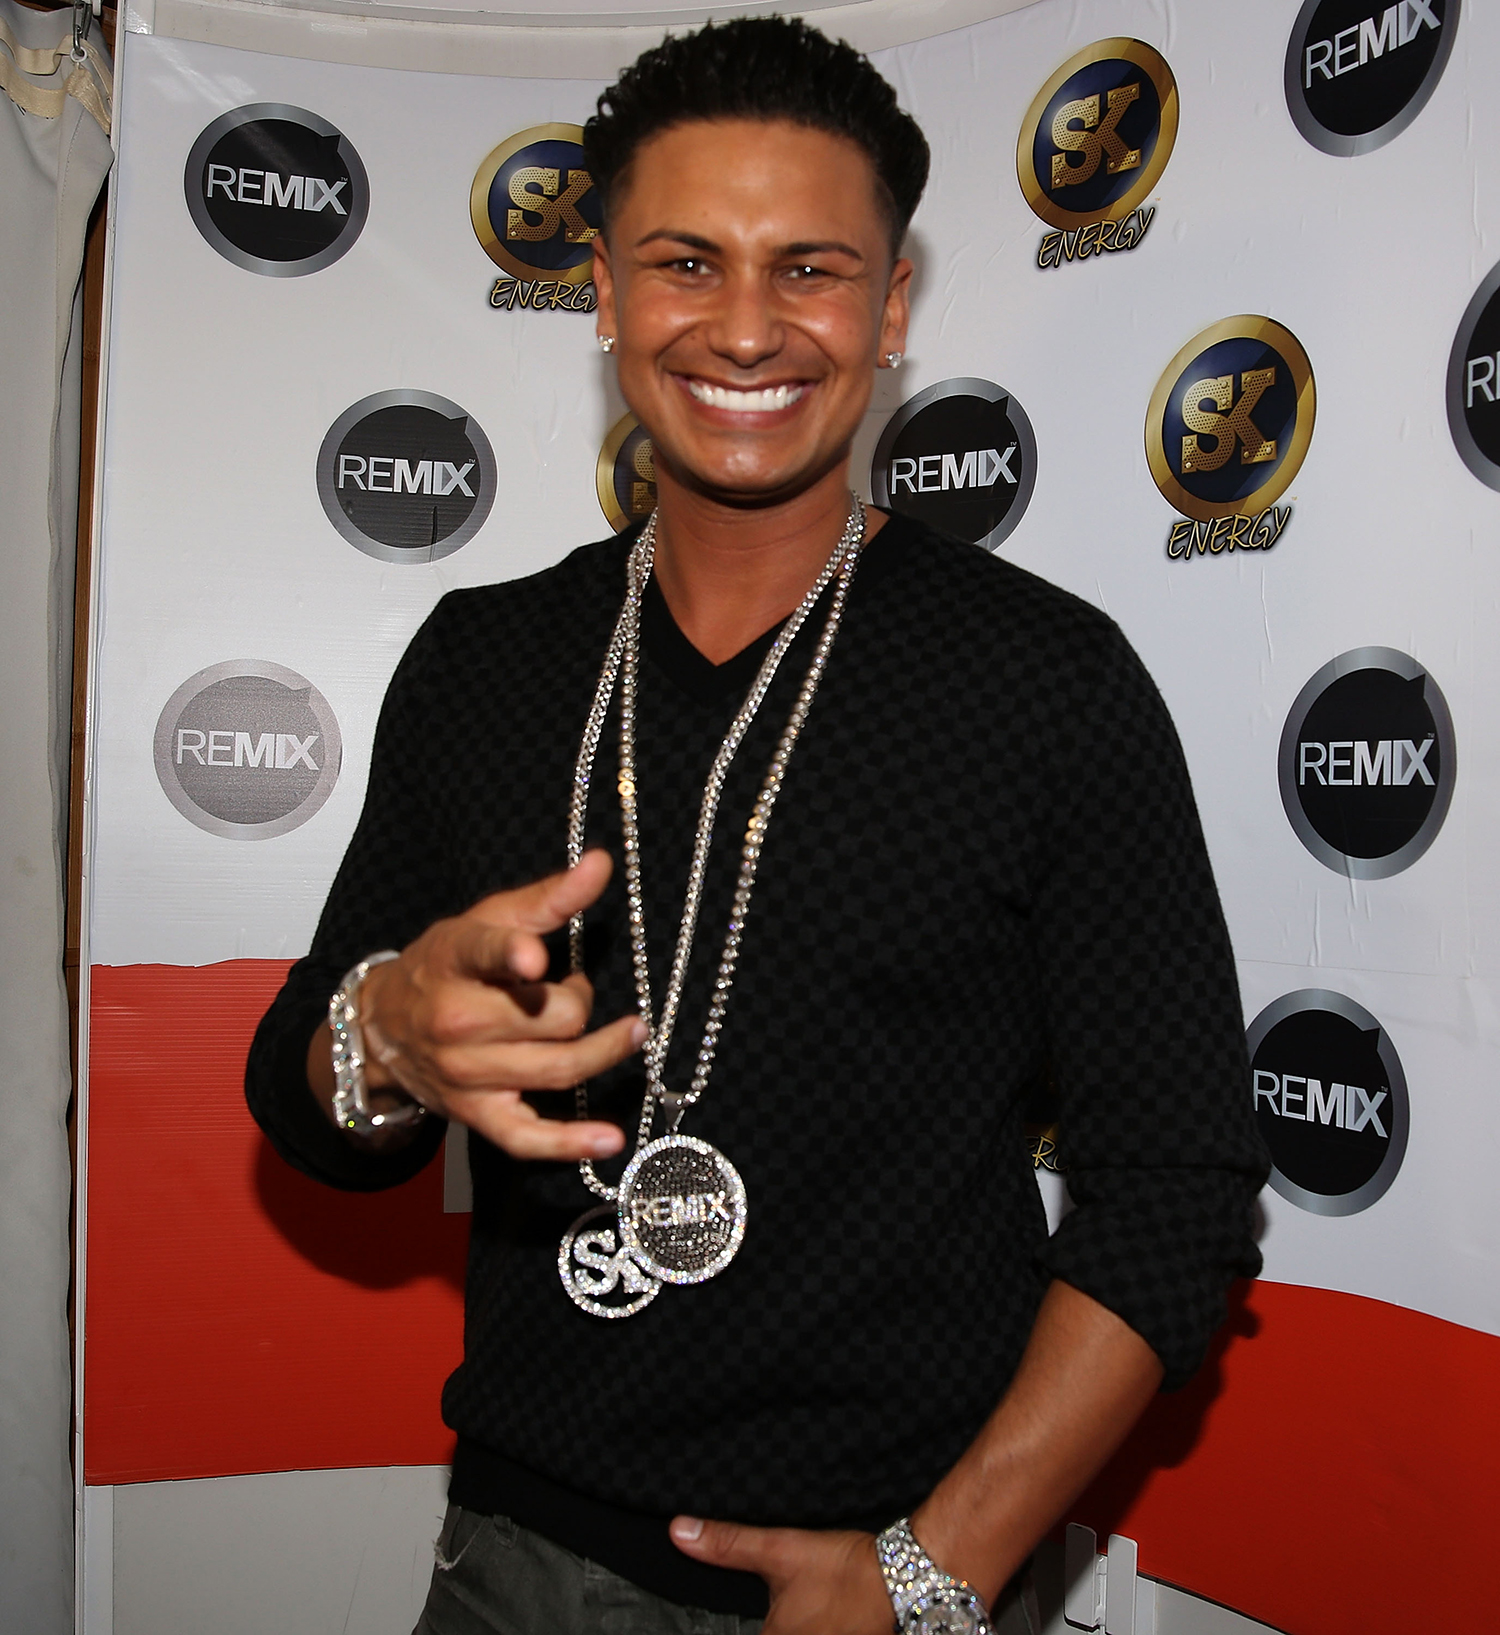 Pauly D (Getty Images)